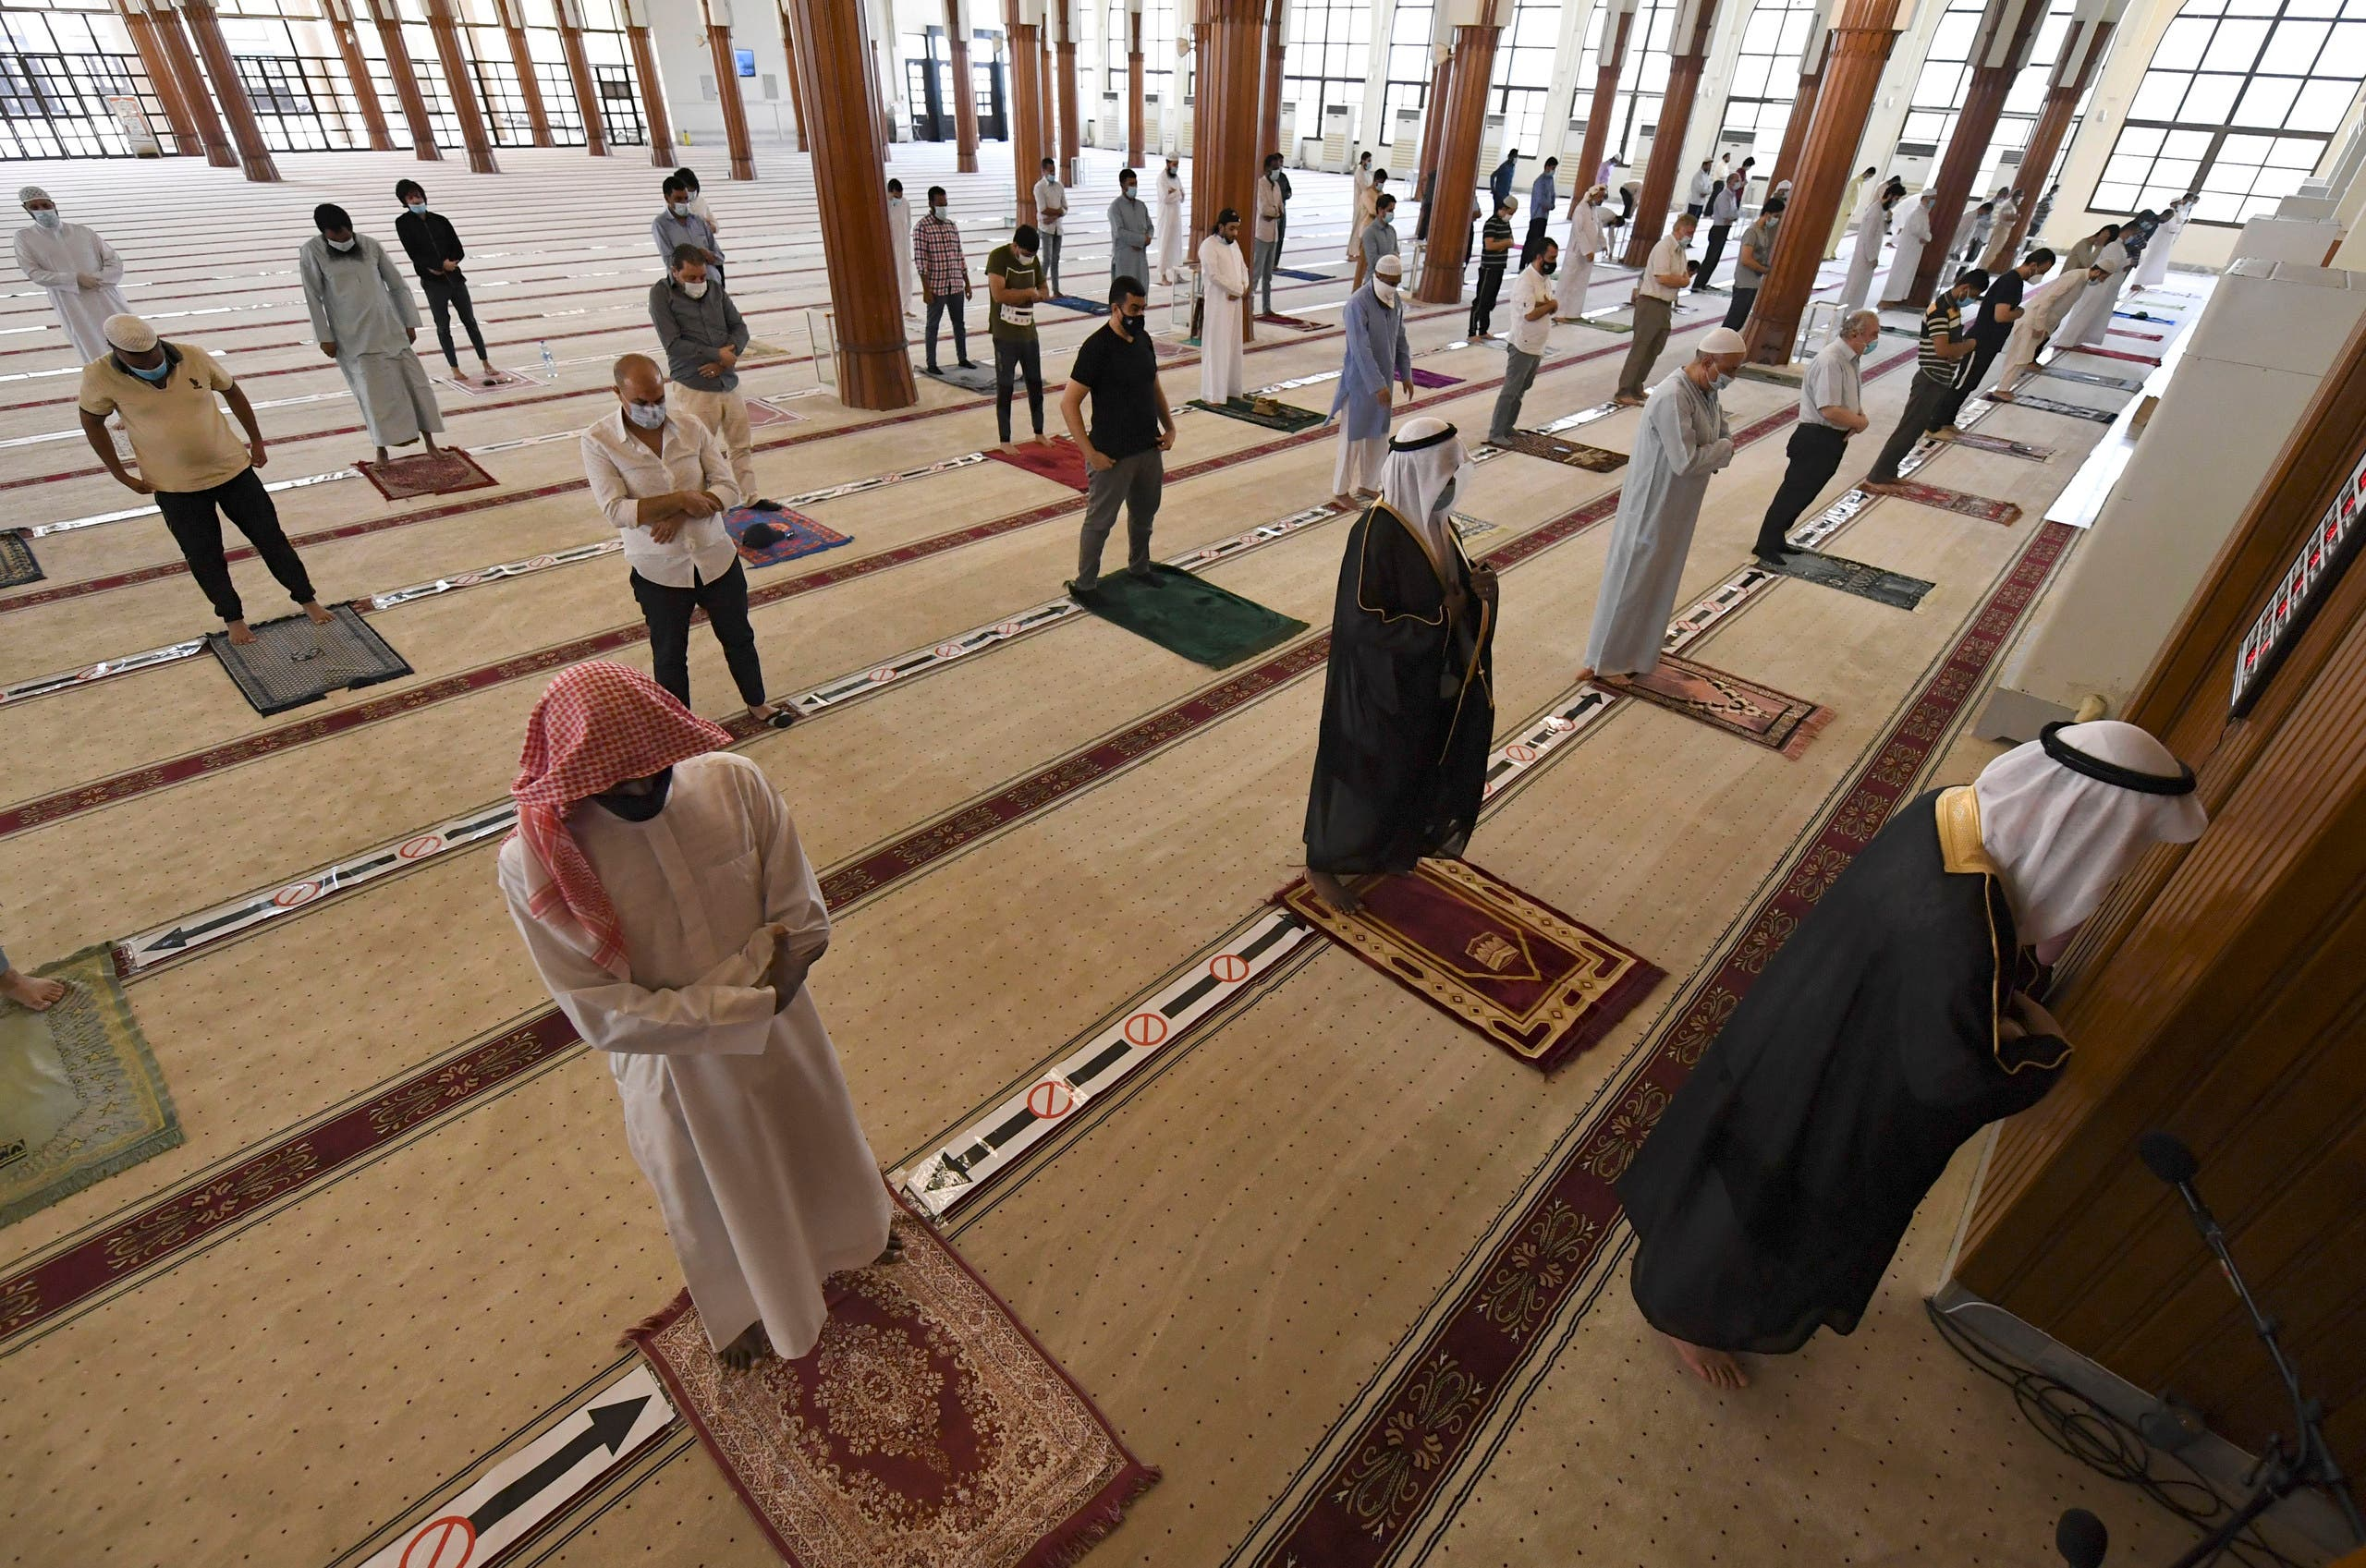 Worshippers keeping a safe distance from one another perform prayers at a mosque in the emirate of Sharjah in the United Arab Emirate.